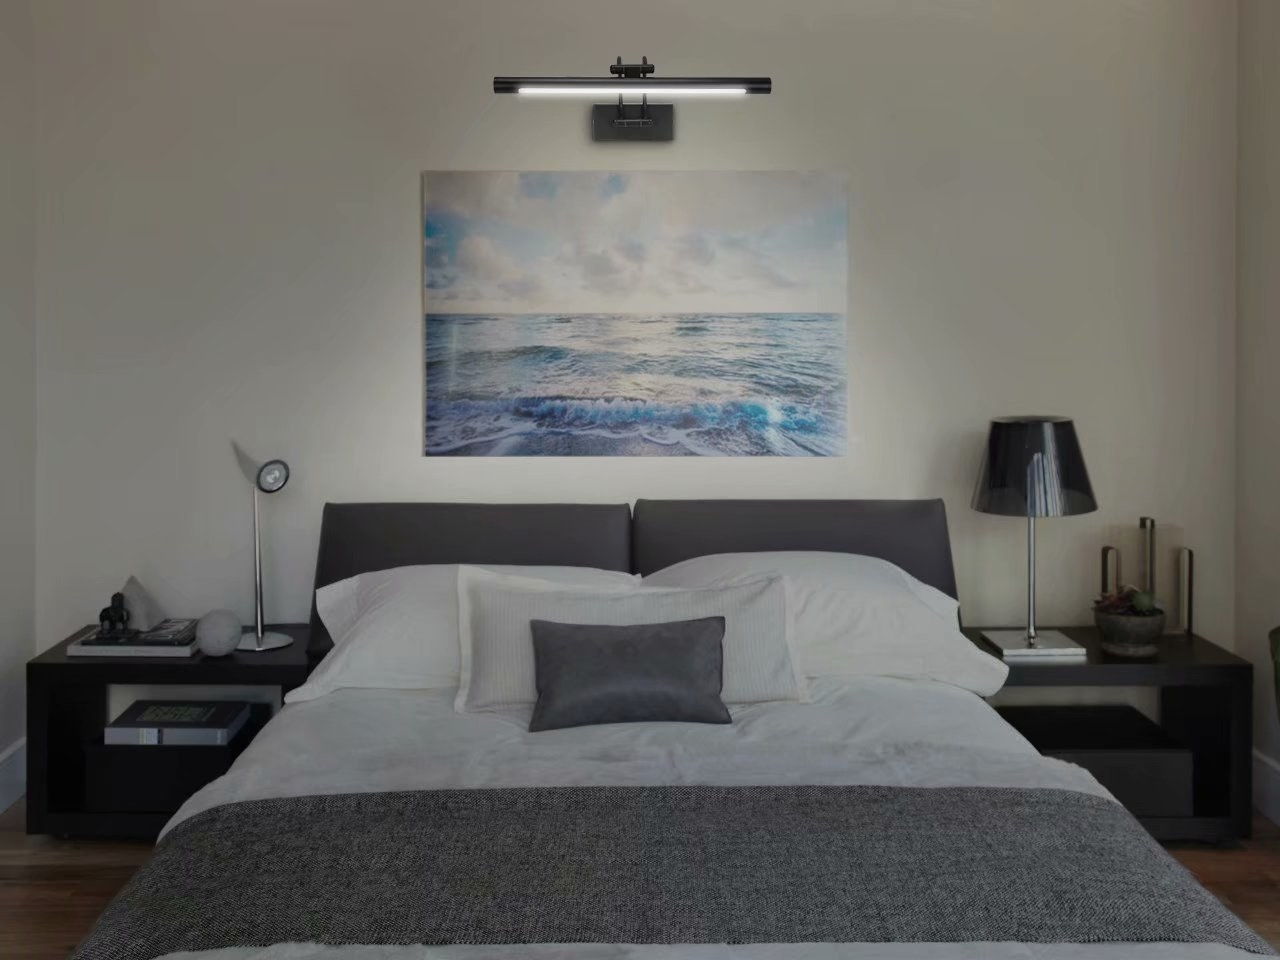 The LED above an ocean picture hanging above a bed